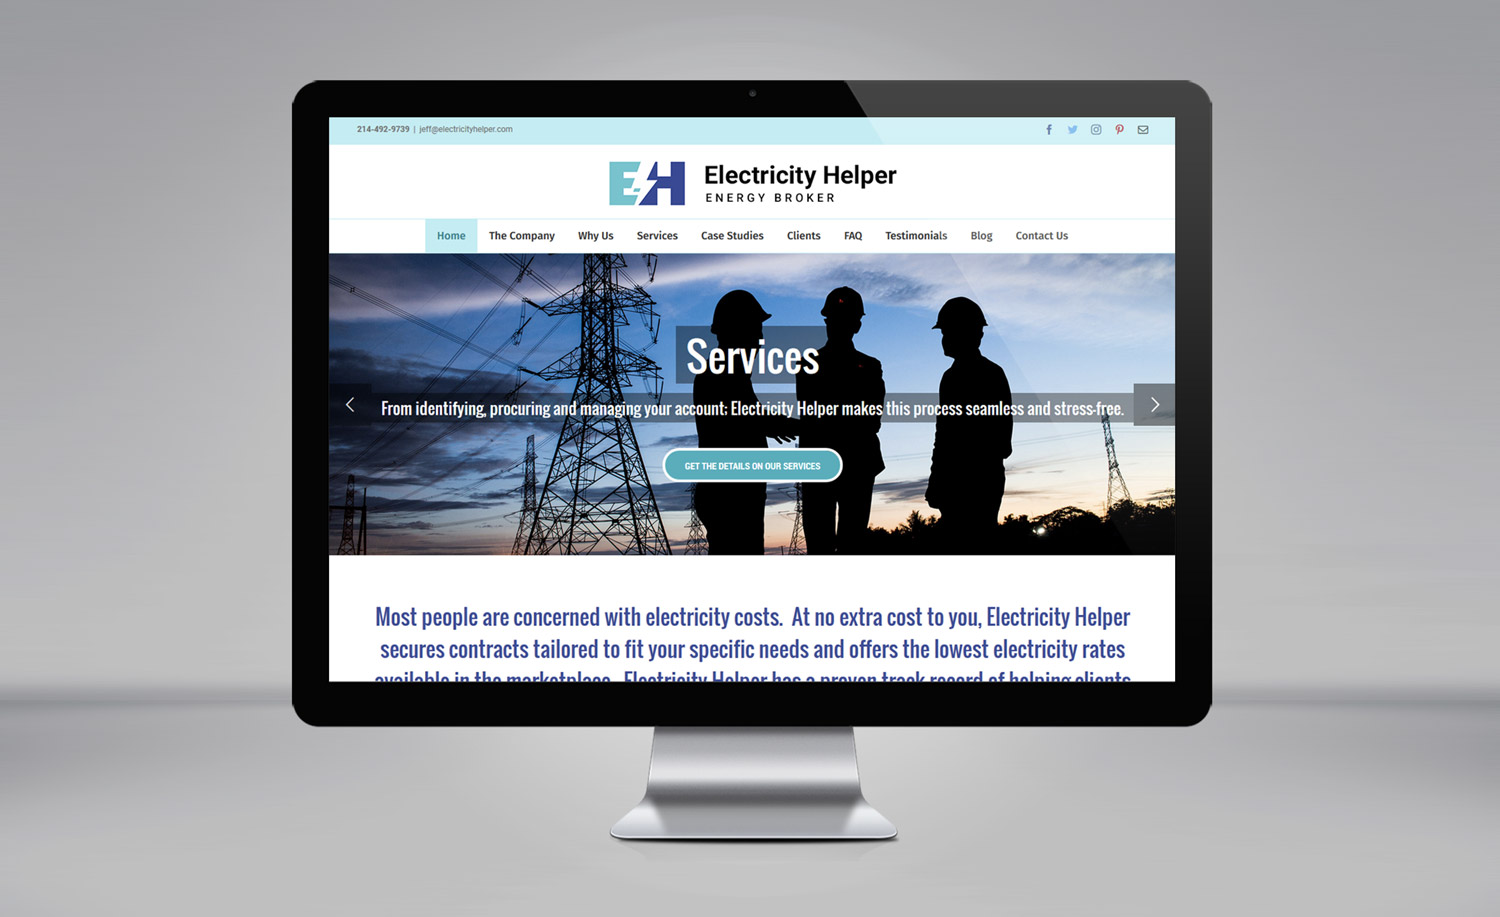 Electricity Helper - Energy Broker